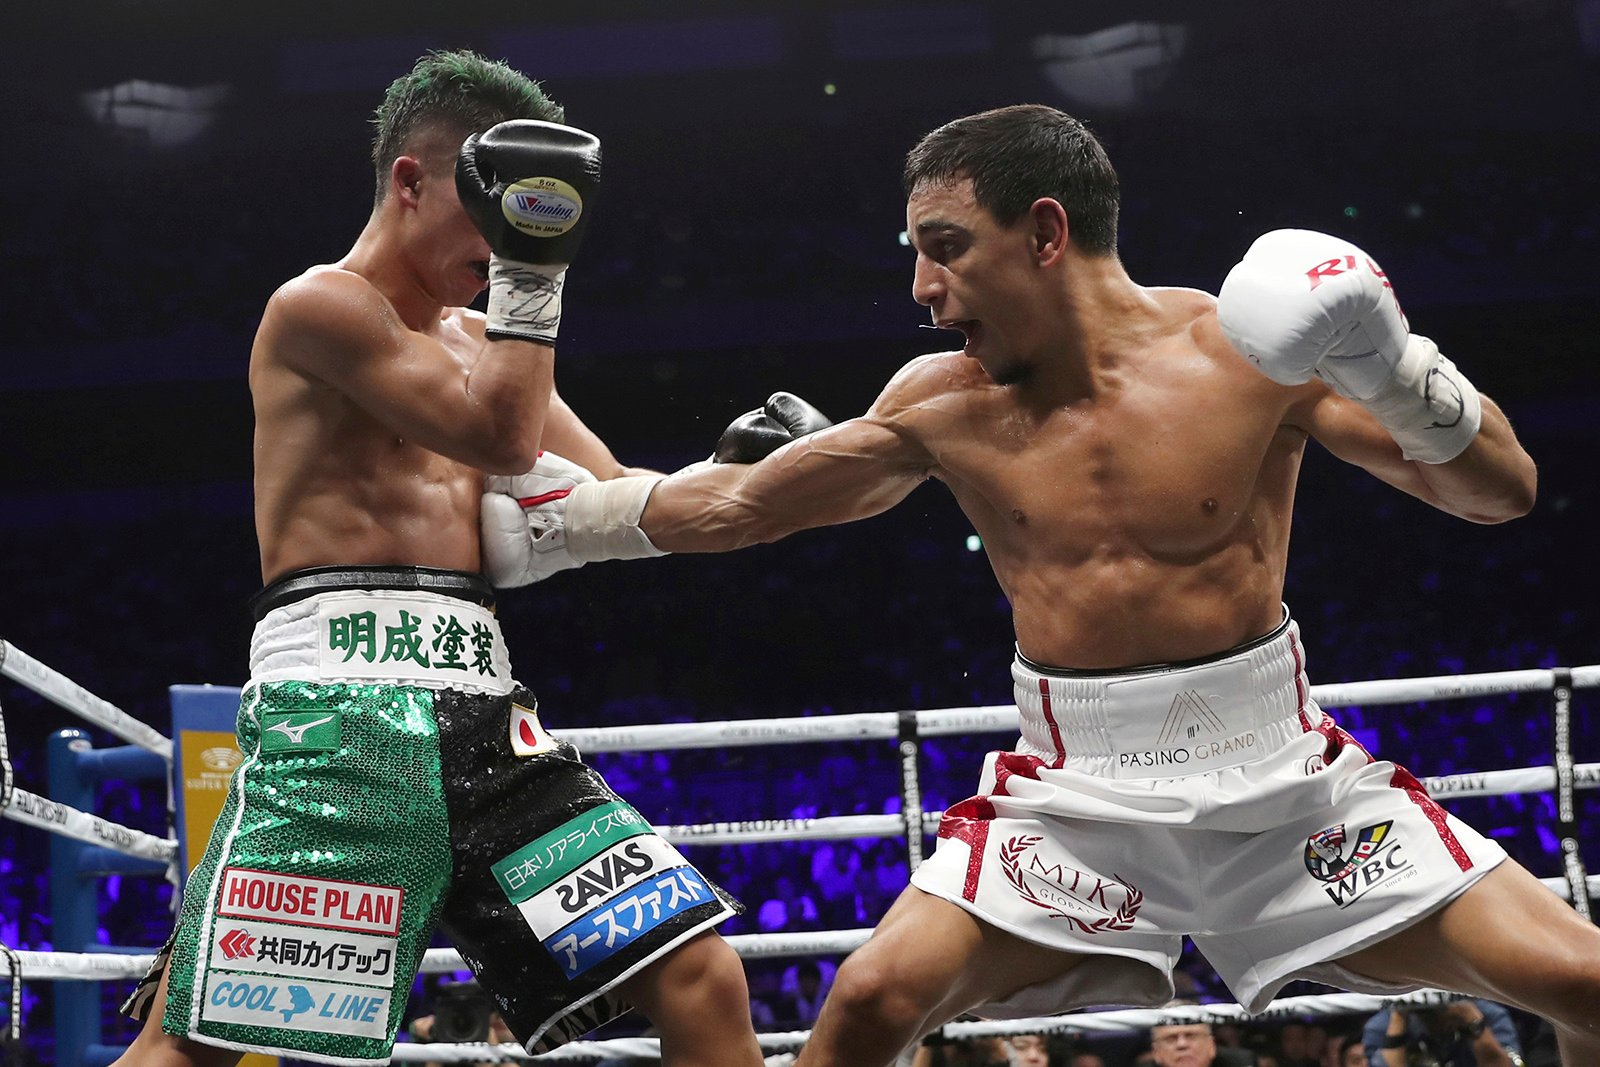 France's Nordine Oubaali, right, sends a right to Japan's Takuma Inoue in the sixth round of their WBC world bantamweight title match in Saitama, Japan, Thursday, Nov. 7, 2019. Oubaali defeated Inoue by a unanimous decision. (AP Photo/Toru Takahashi)